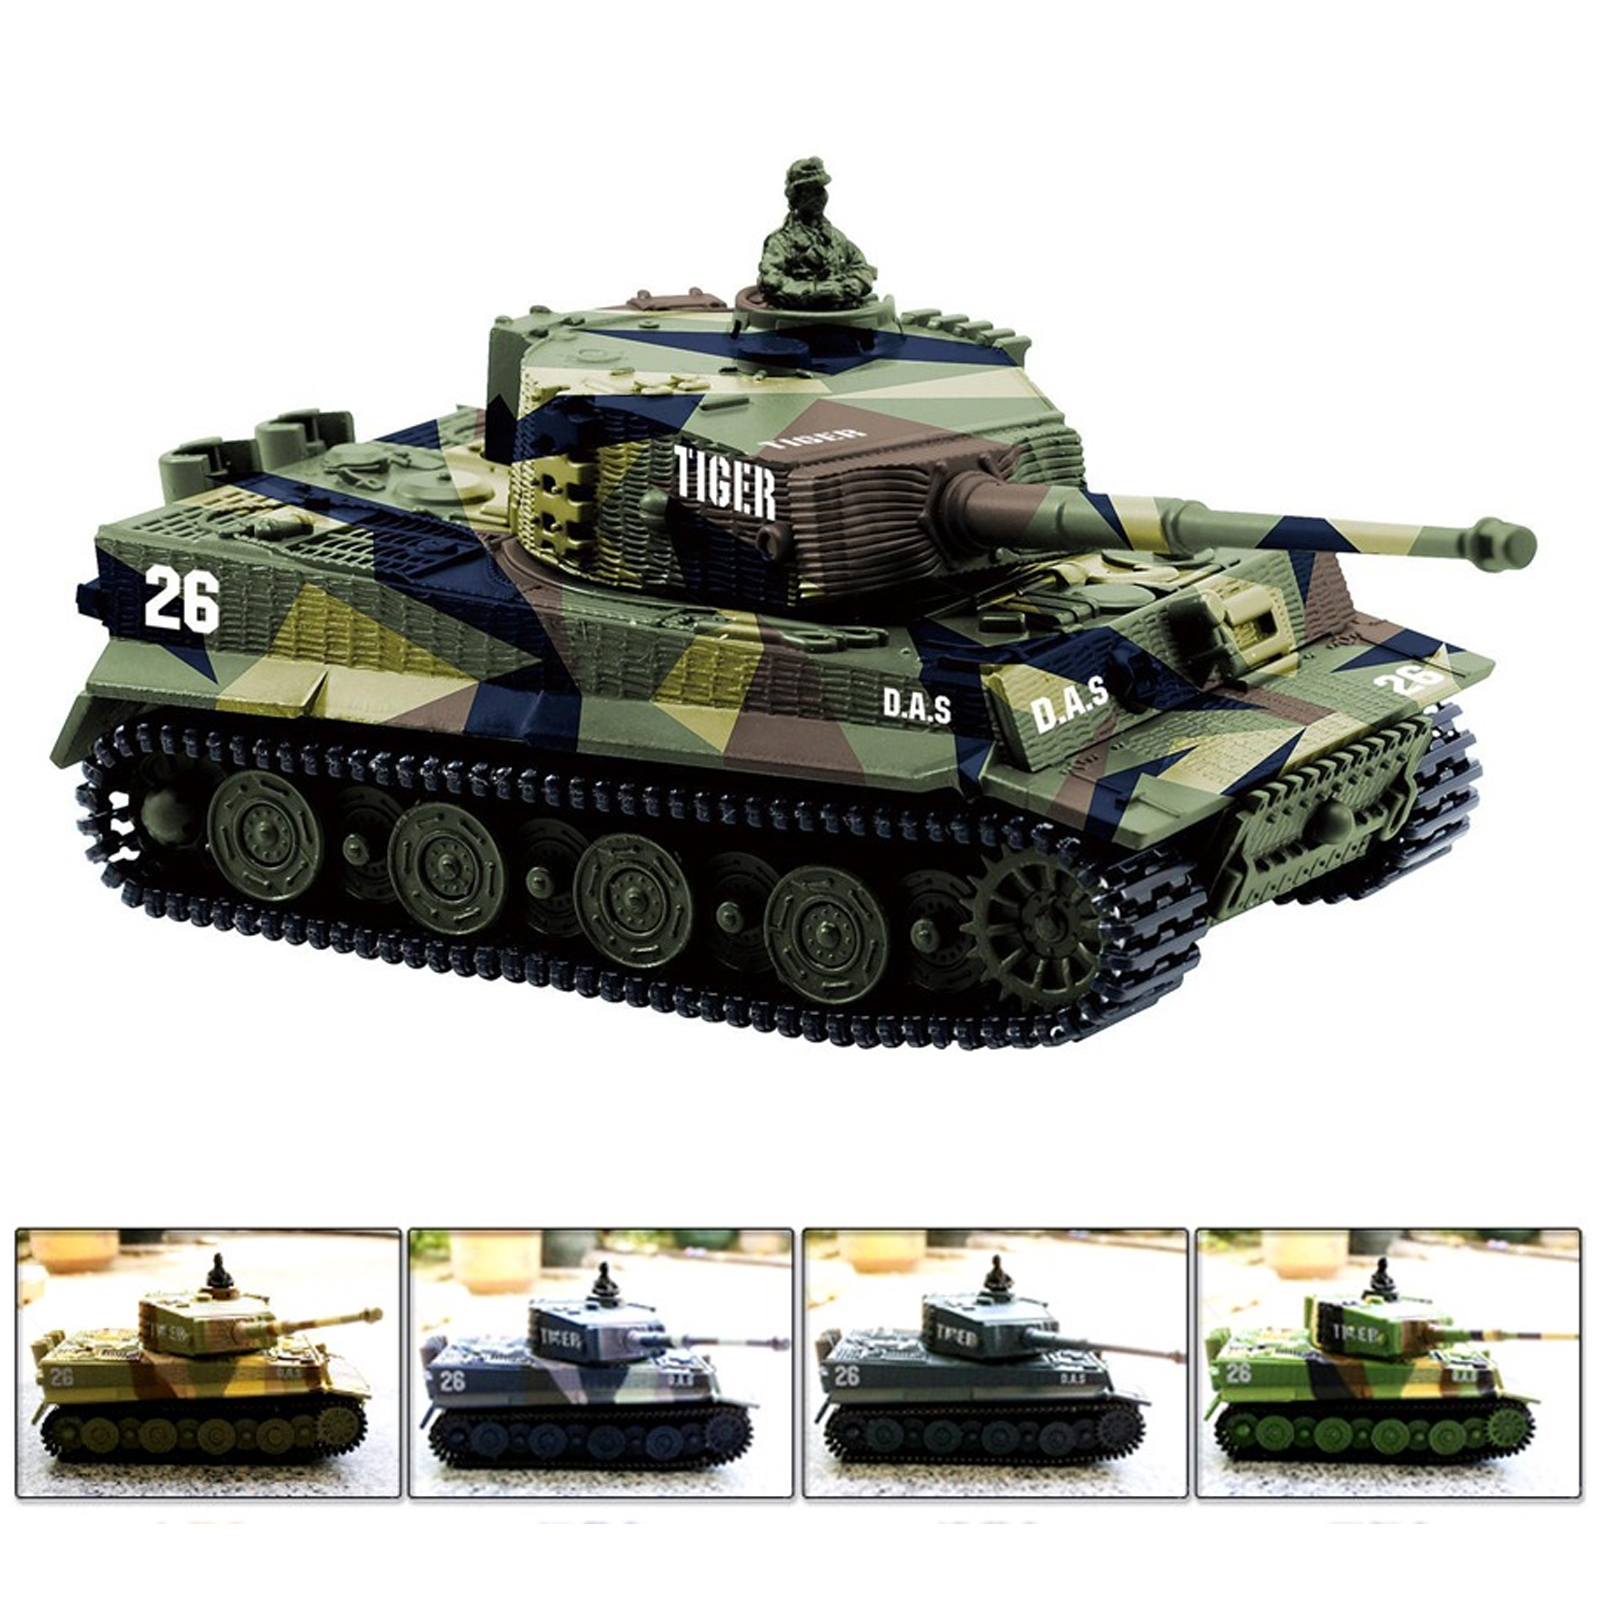 Cheerwing 1:72 Radio Remote Control Mini RC German Tiger I Panzer Tank with Sound, Rotating Turret (Vary Colors)